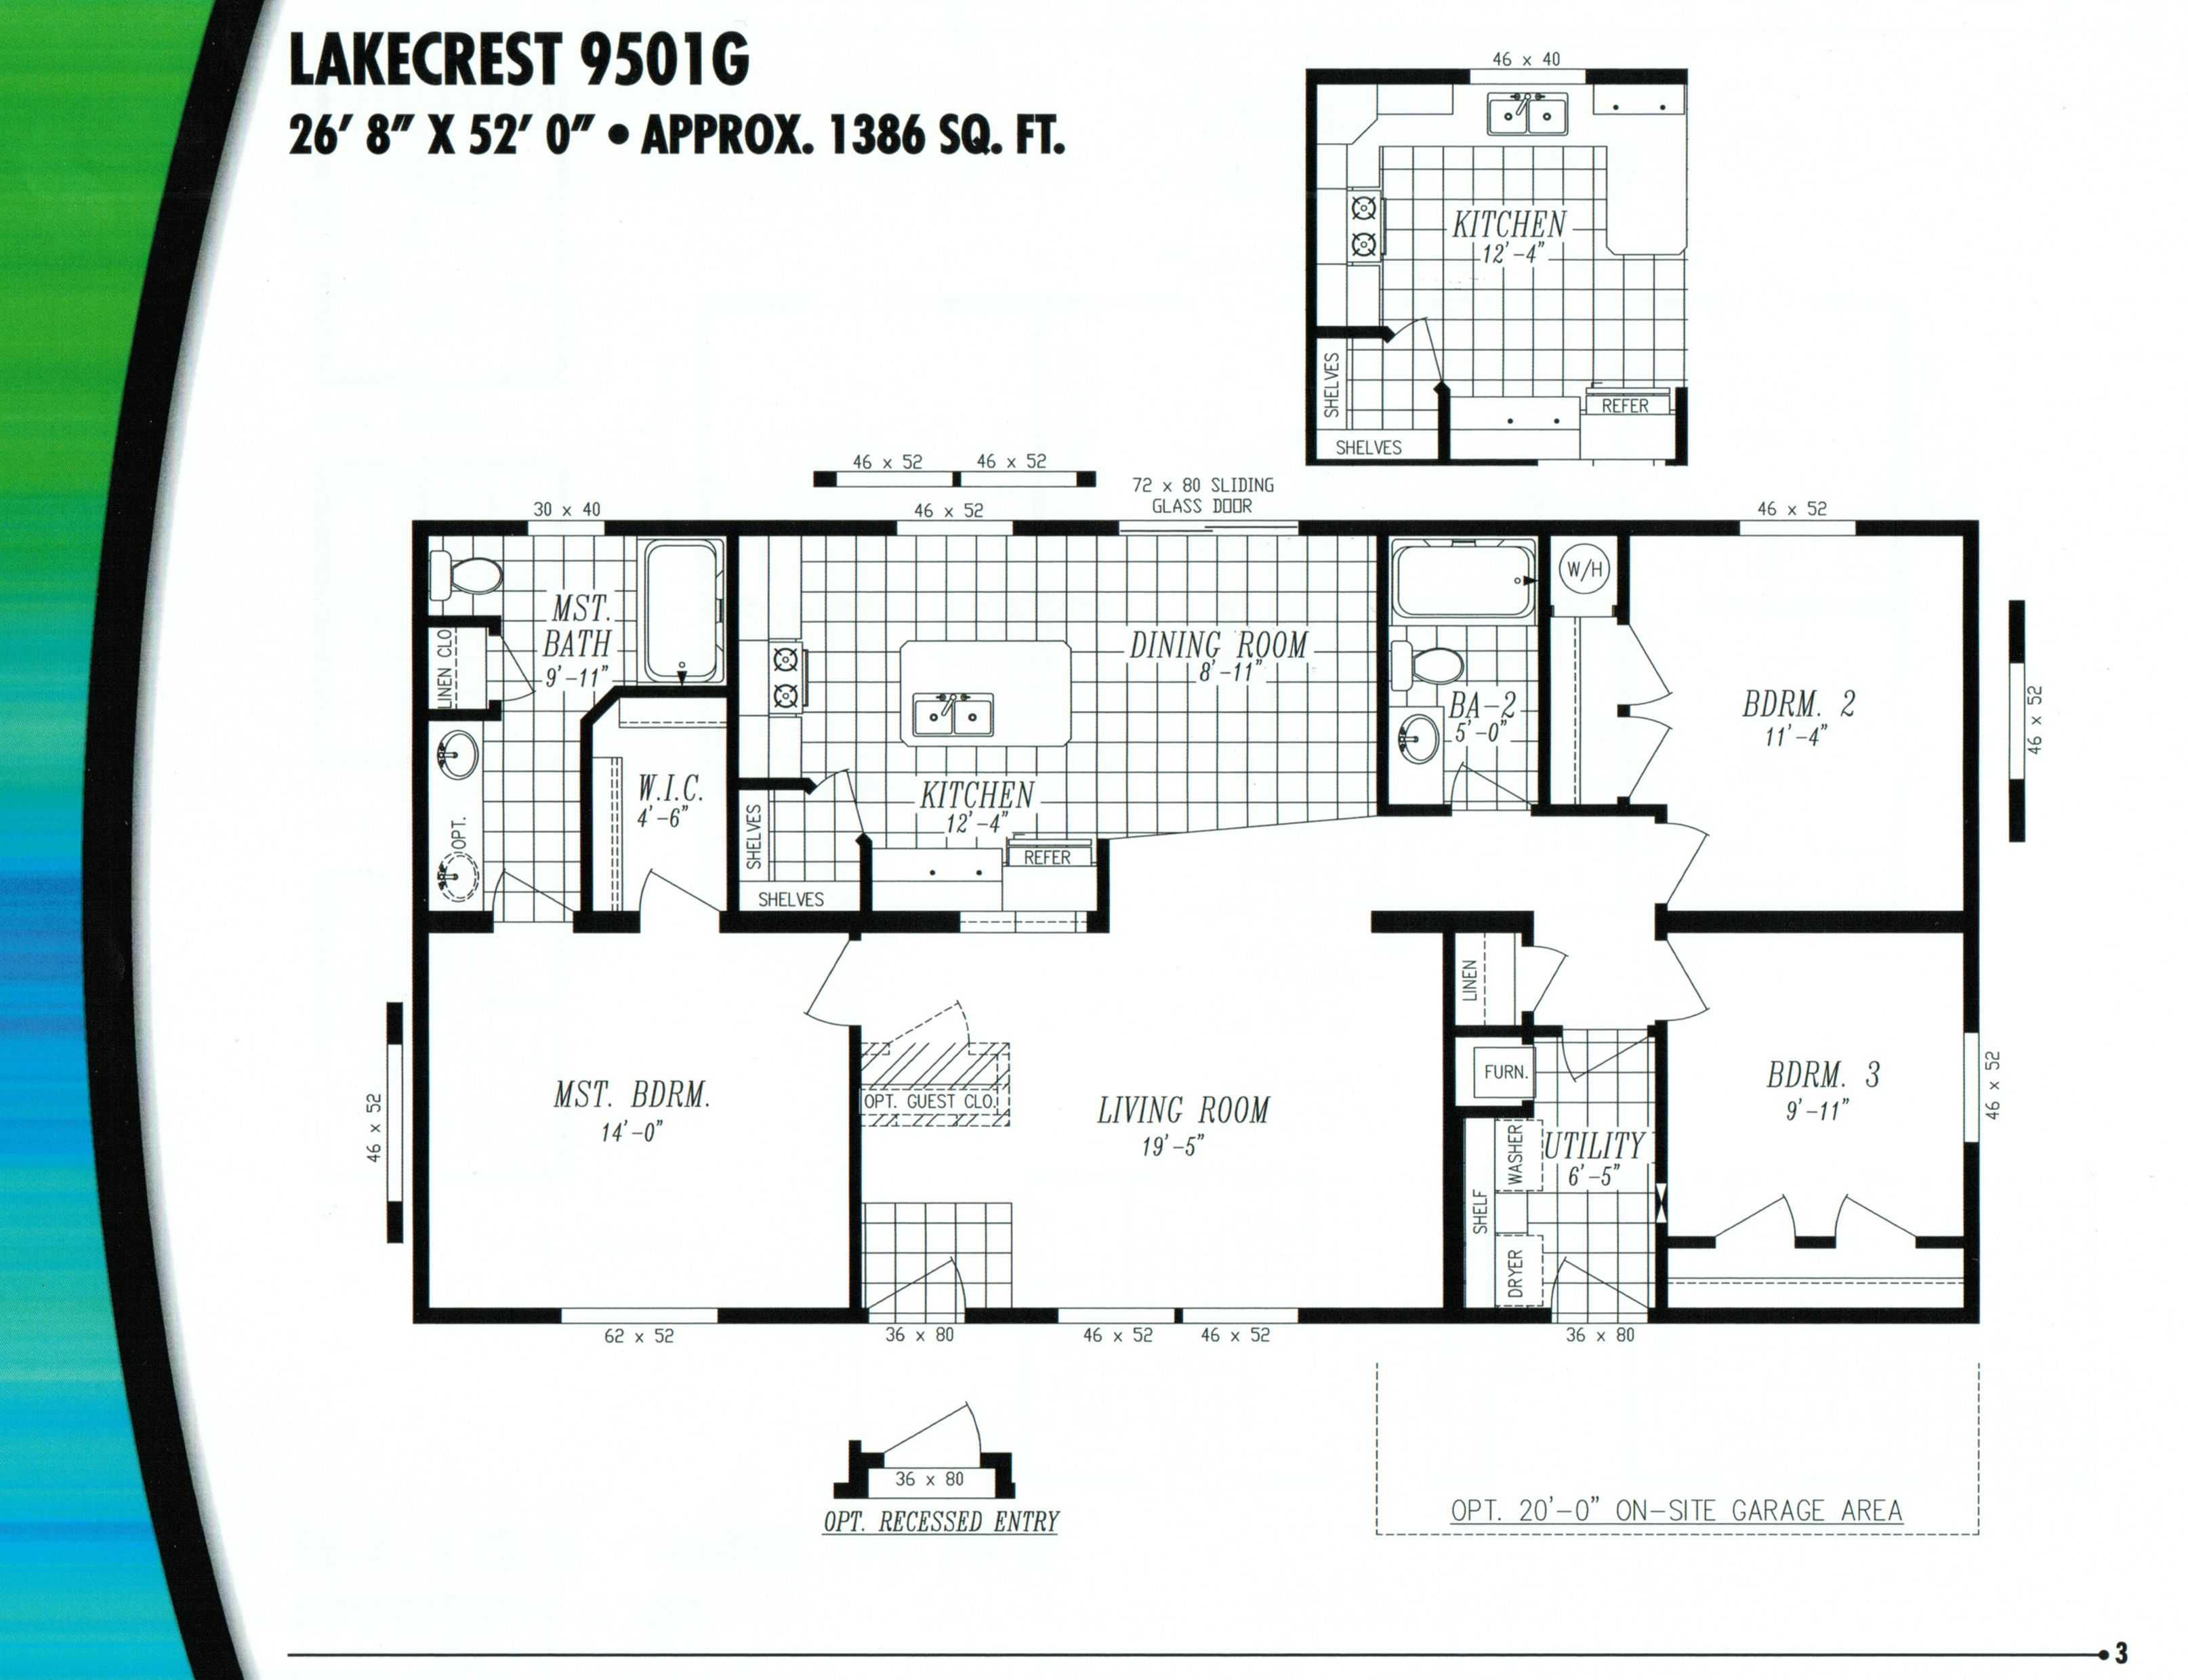 Marlette Mobile Home Floor Plans 2014 also Minimalist Bedroom 2 also Apartment likewise Floor plans besides 2 Unit House Plans. on small 2 bedroom apartment floor plan